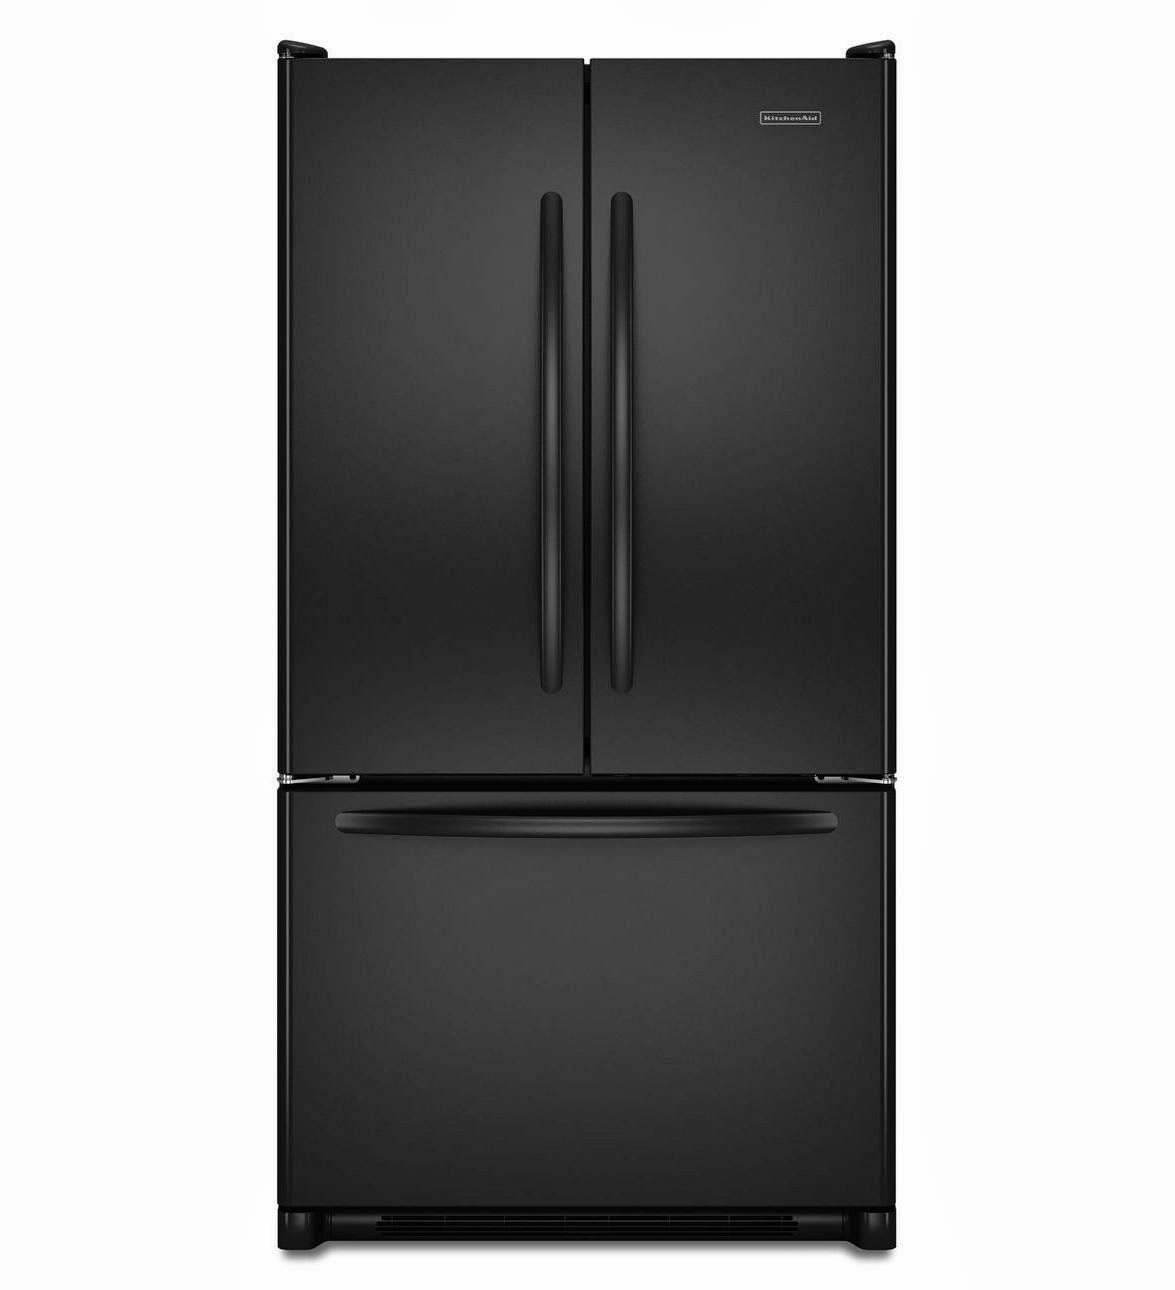 Kitchenaid Black Stainless Steel Counter Depth French Door: Counter Depth Refrigerators Reviews: February 2014